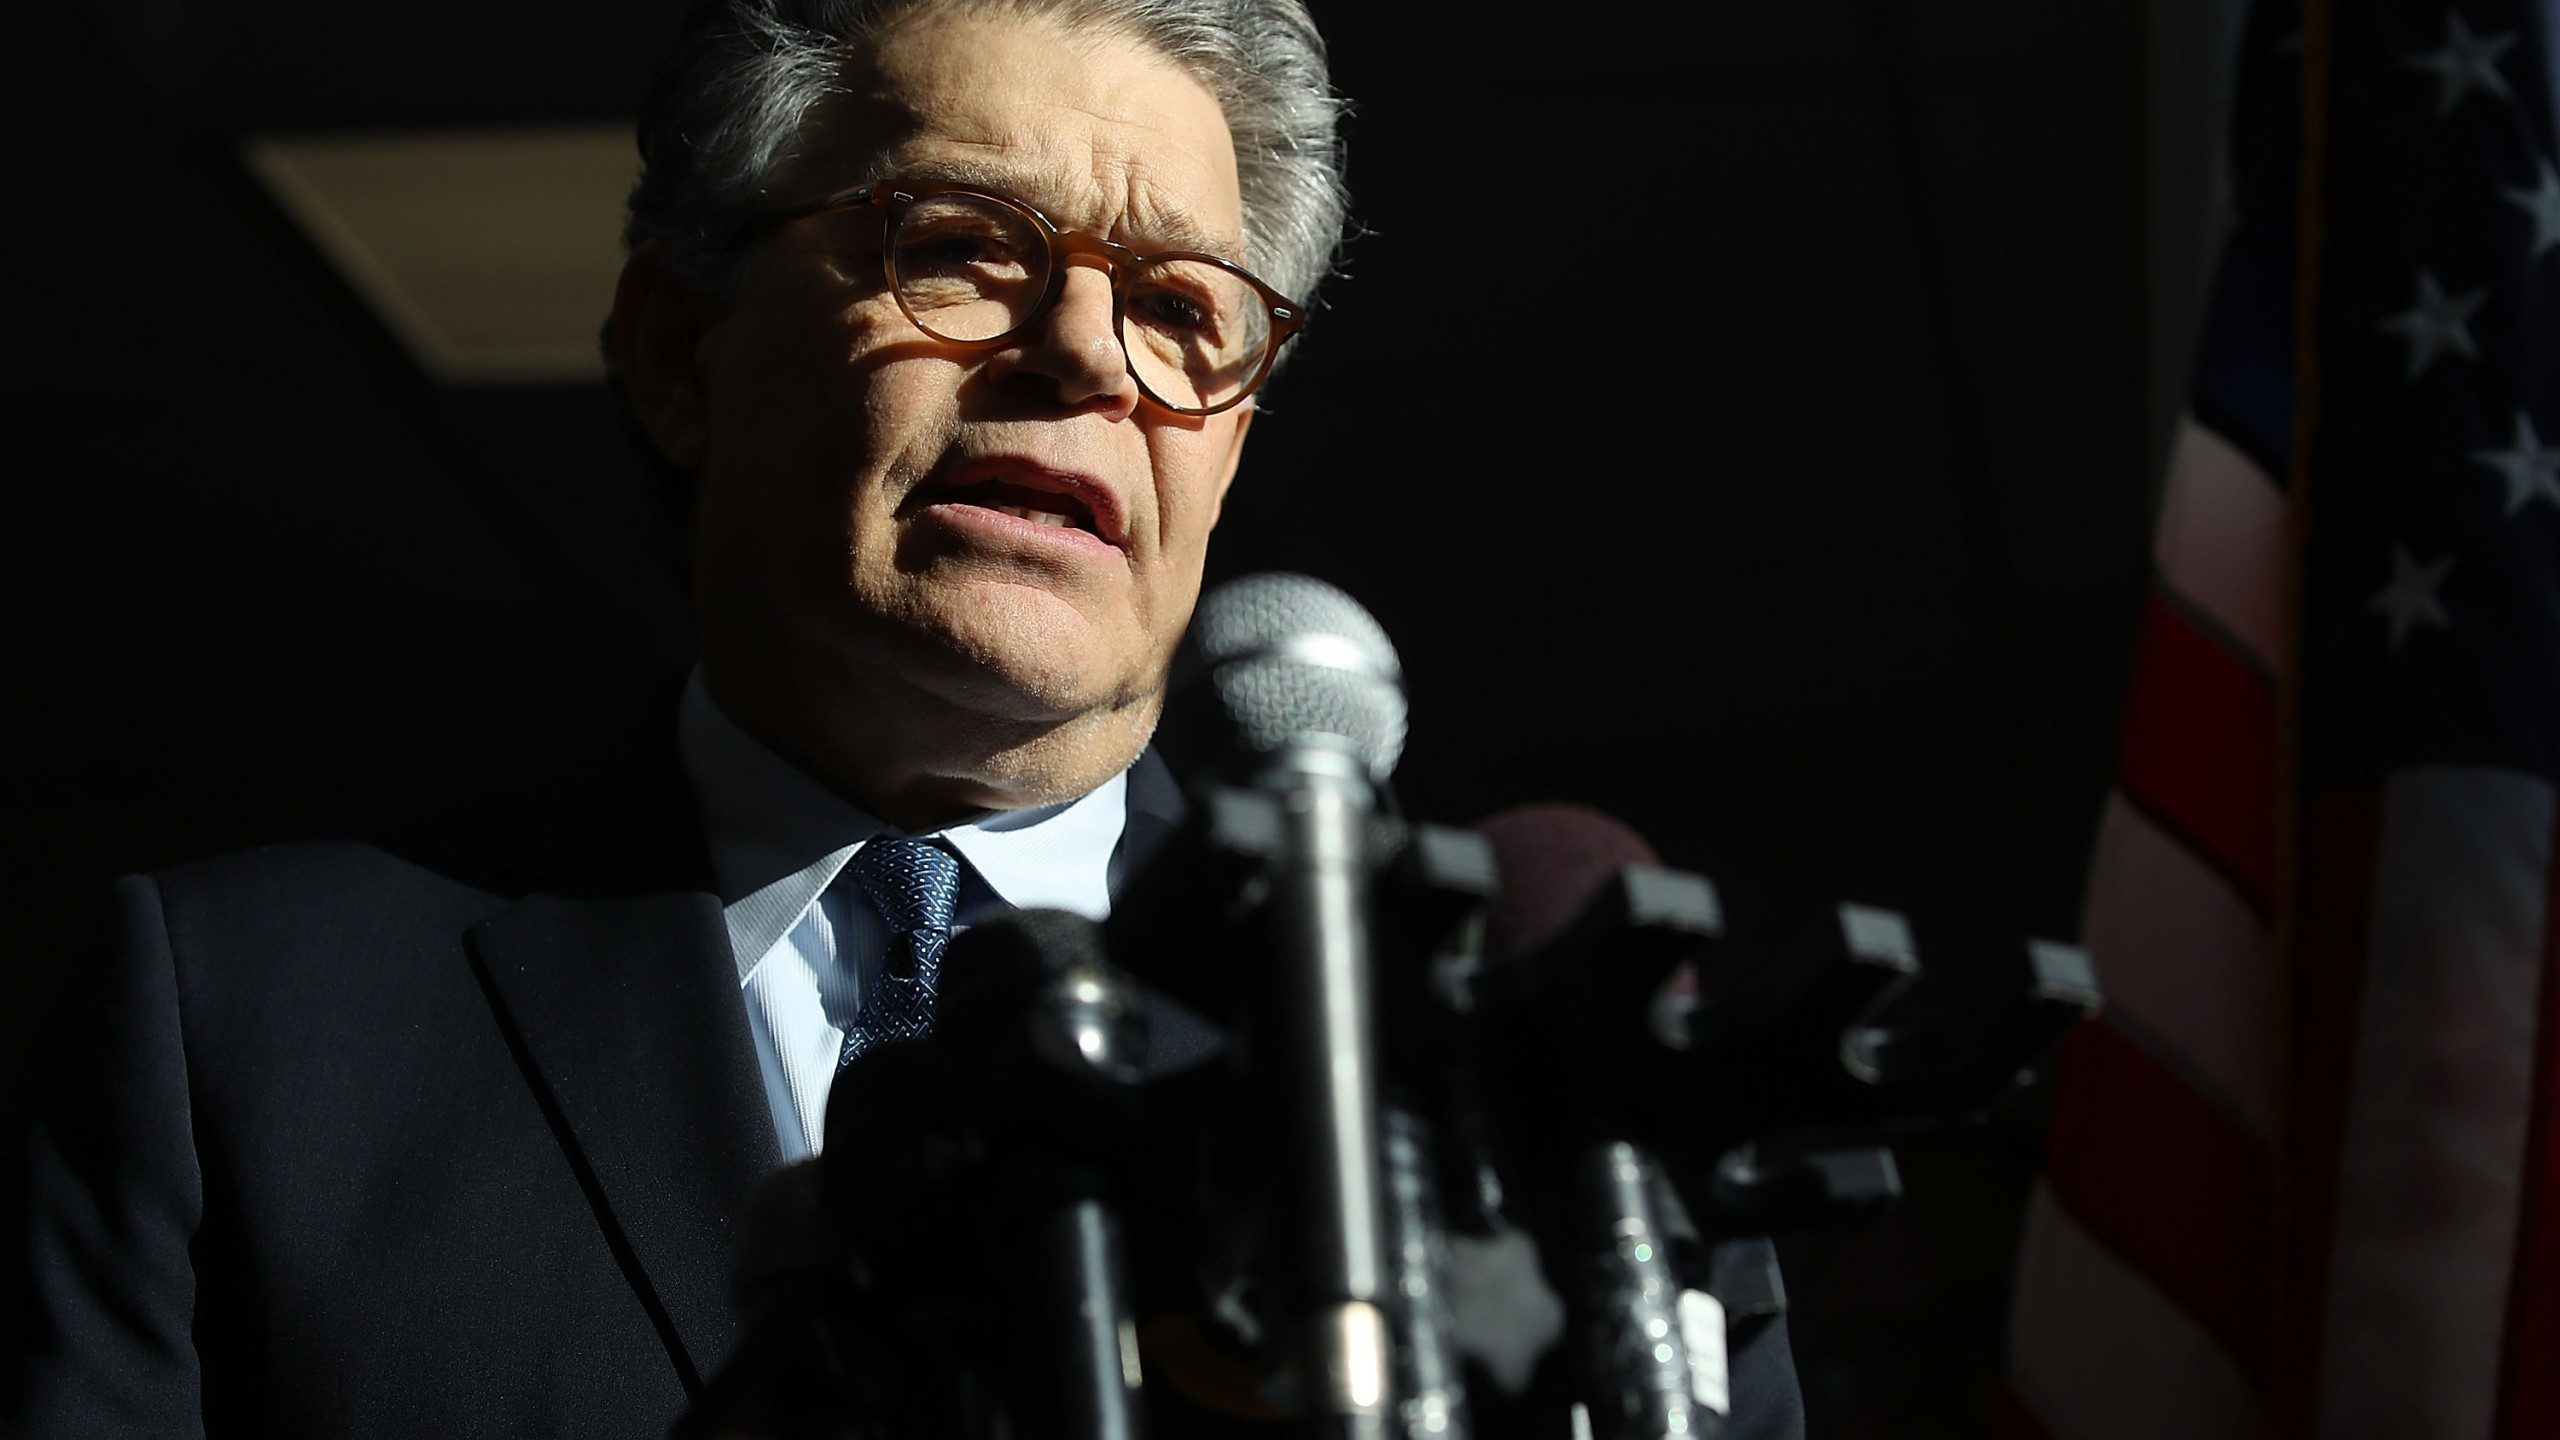 Sen. Al Franken speaks to the media after returning back to work in the Senate on Capitol Hill on Nov. 27, 2017 in Washington, D.C. (Credit: Mark Wilson/Getty Images)